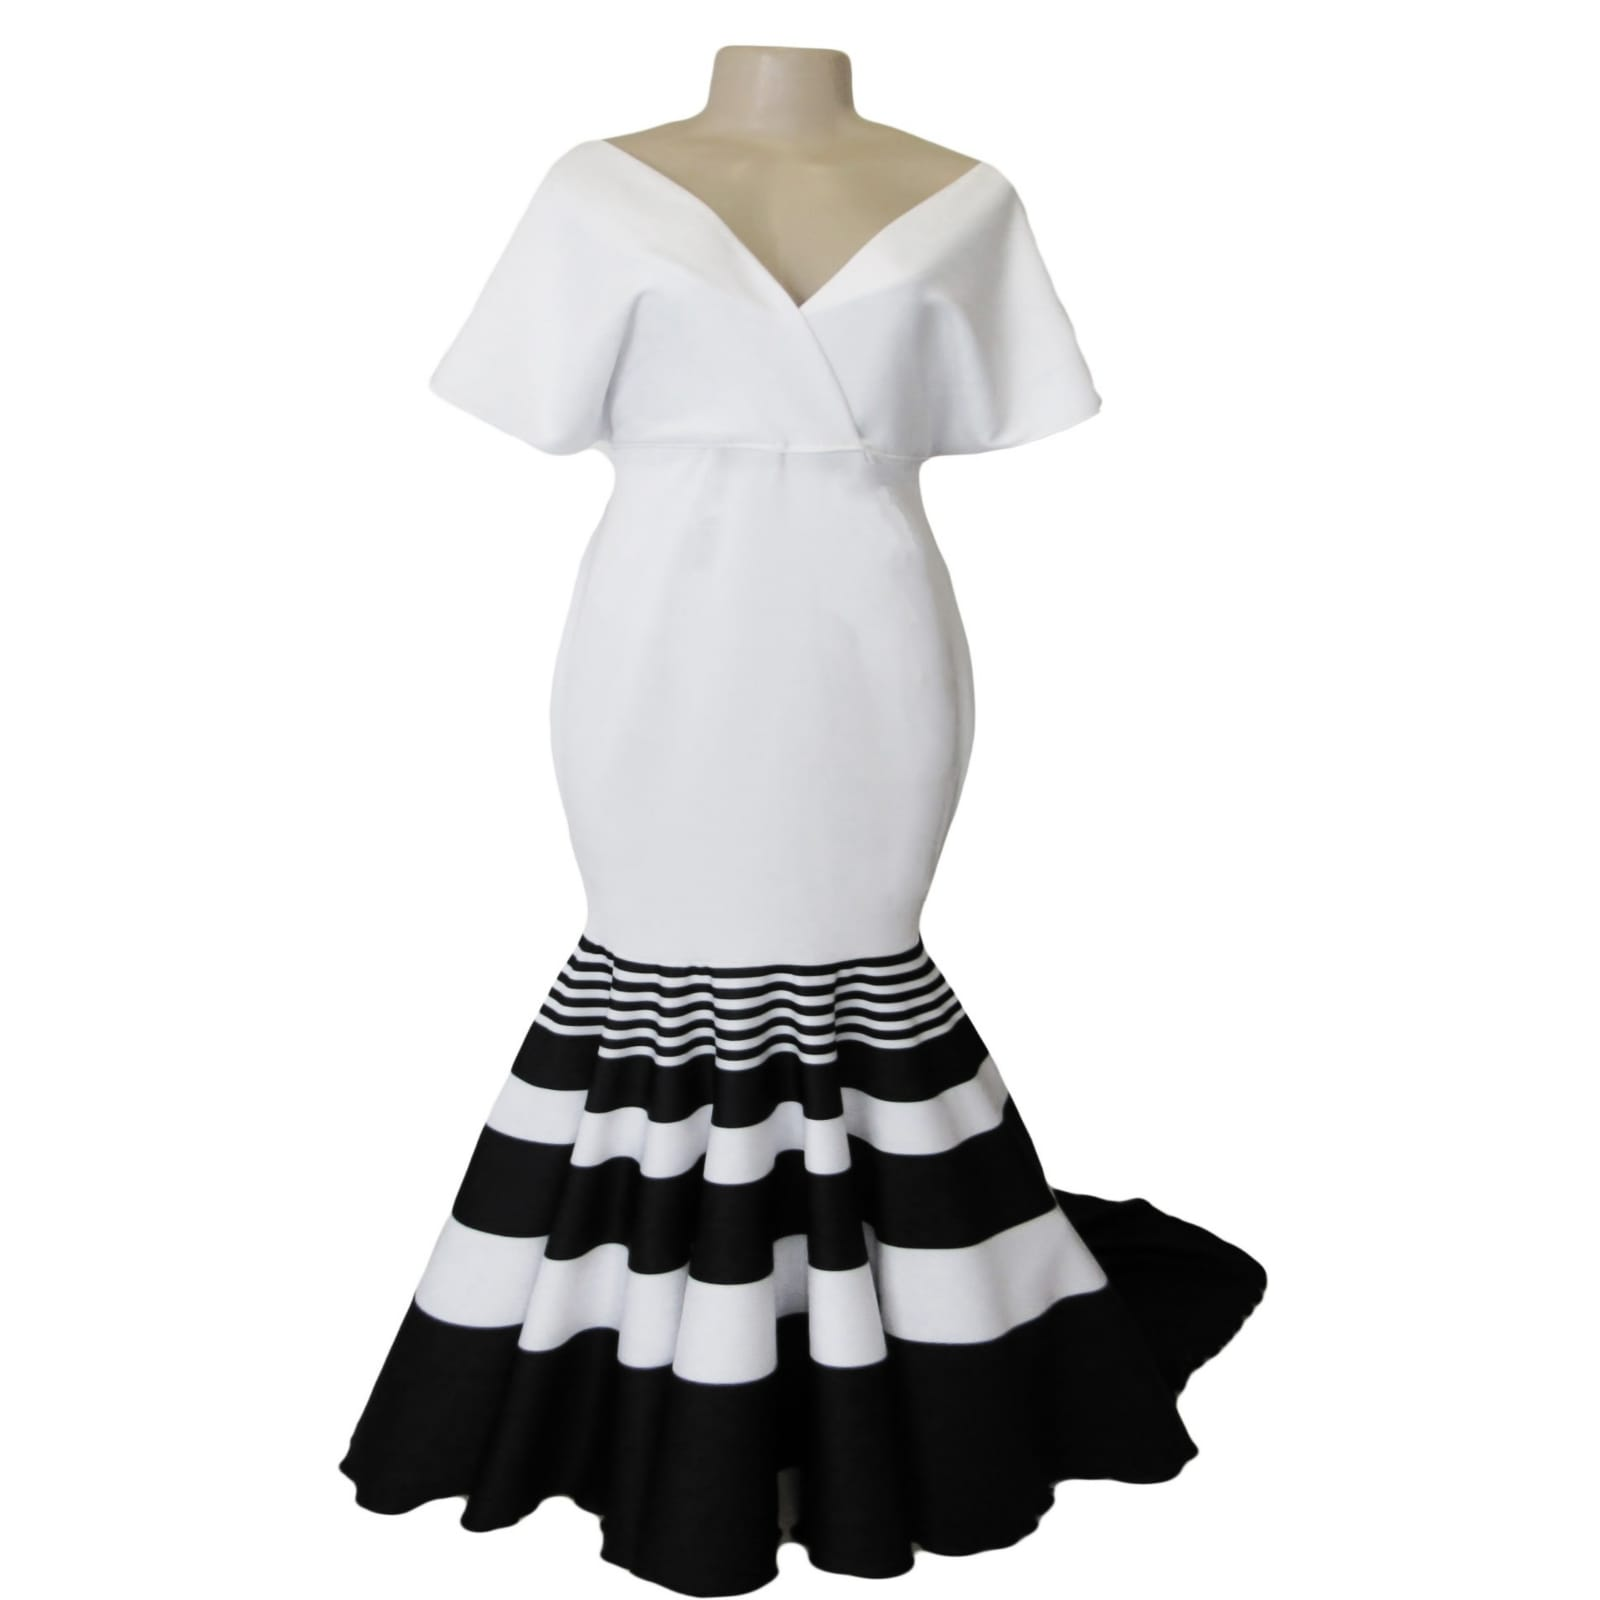 Black and white striped soft mermaid prom dress 6 black and white striped soft mermaid prom dress with a train. With a cross bust neckline with wide shoulders creating a wide short sleeve. The print is known as a traditional xhosa print in south africa.